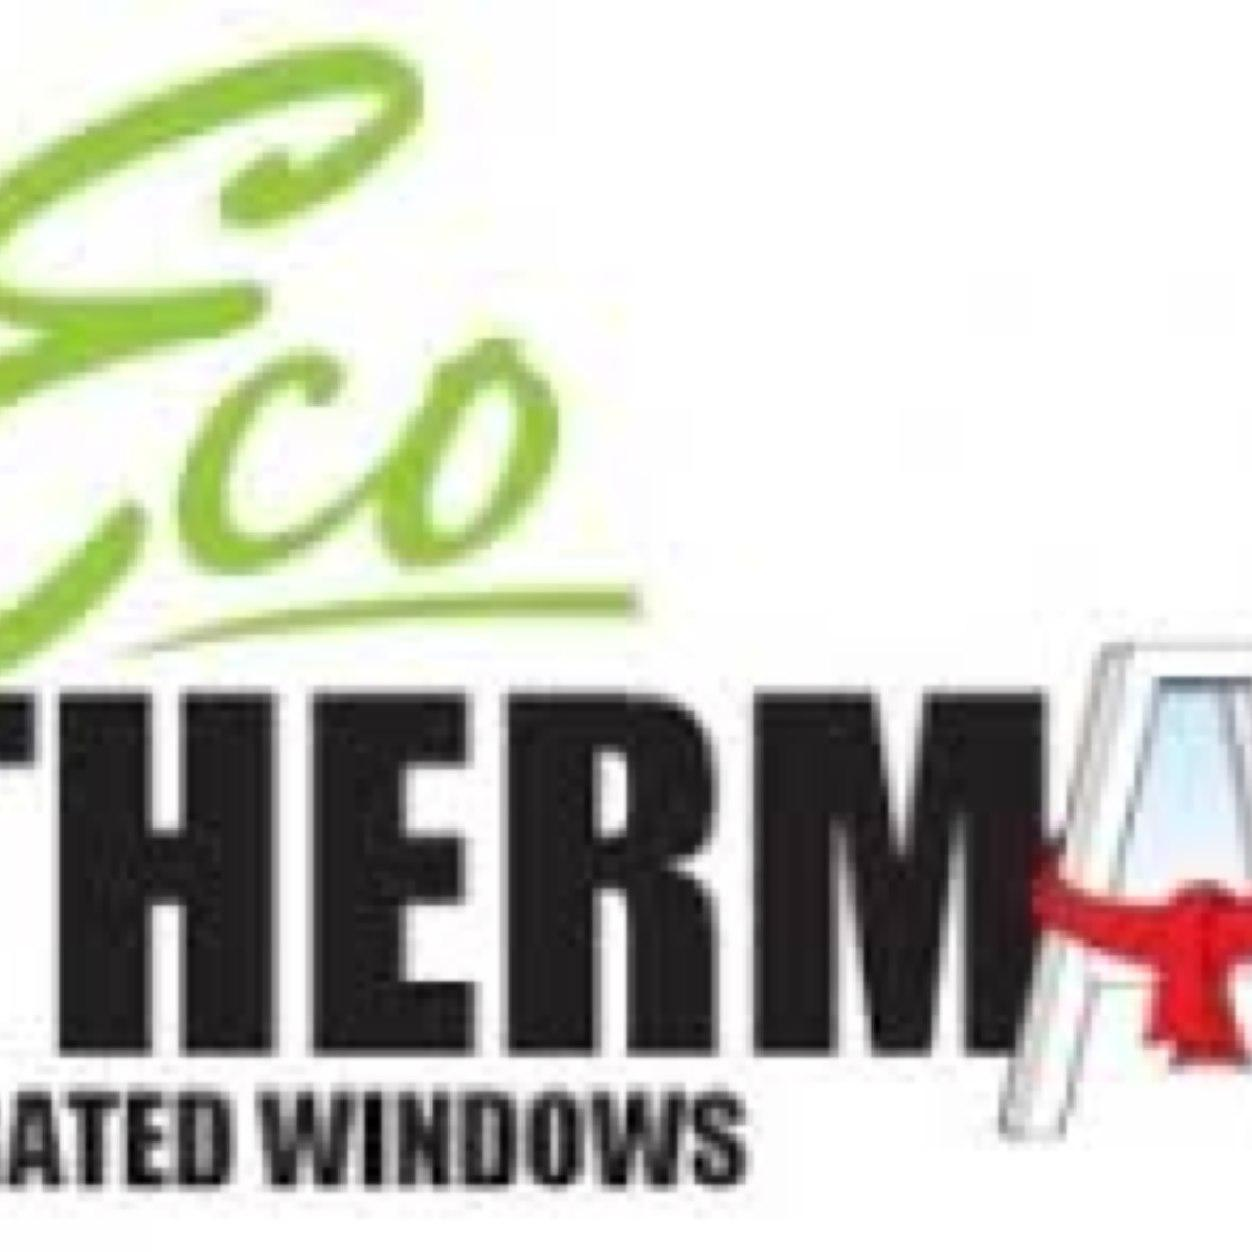 Thermal windows windowsthermal twitter for Thermal windows